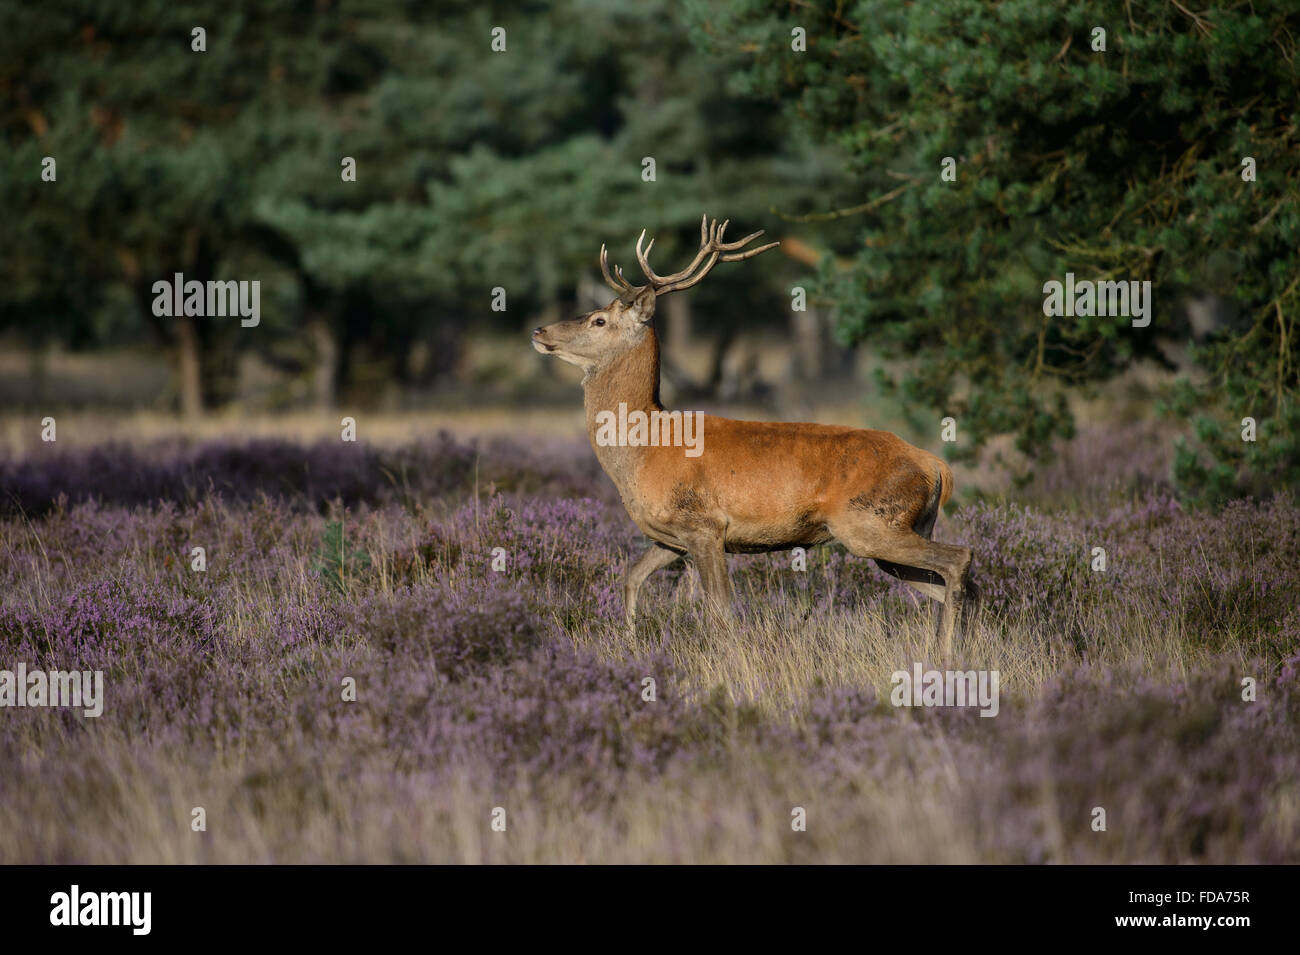 Red der stag with small antlers, in a field with blooming purple heather - Stock Image